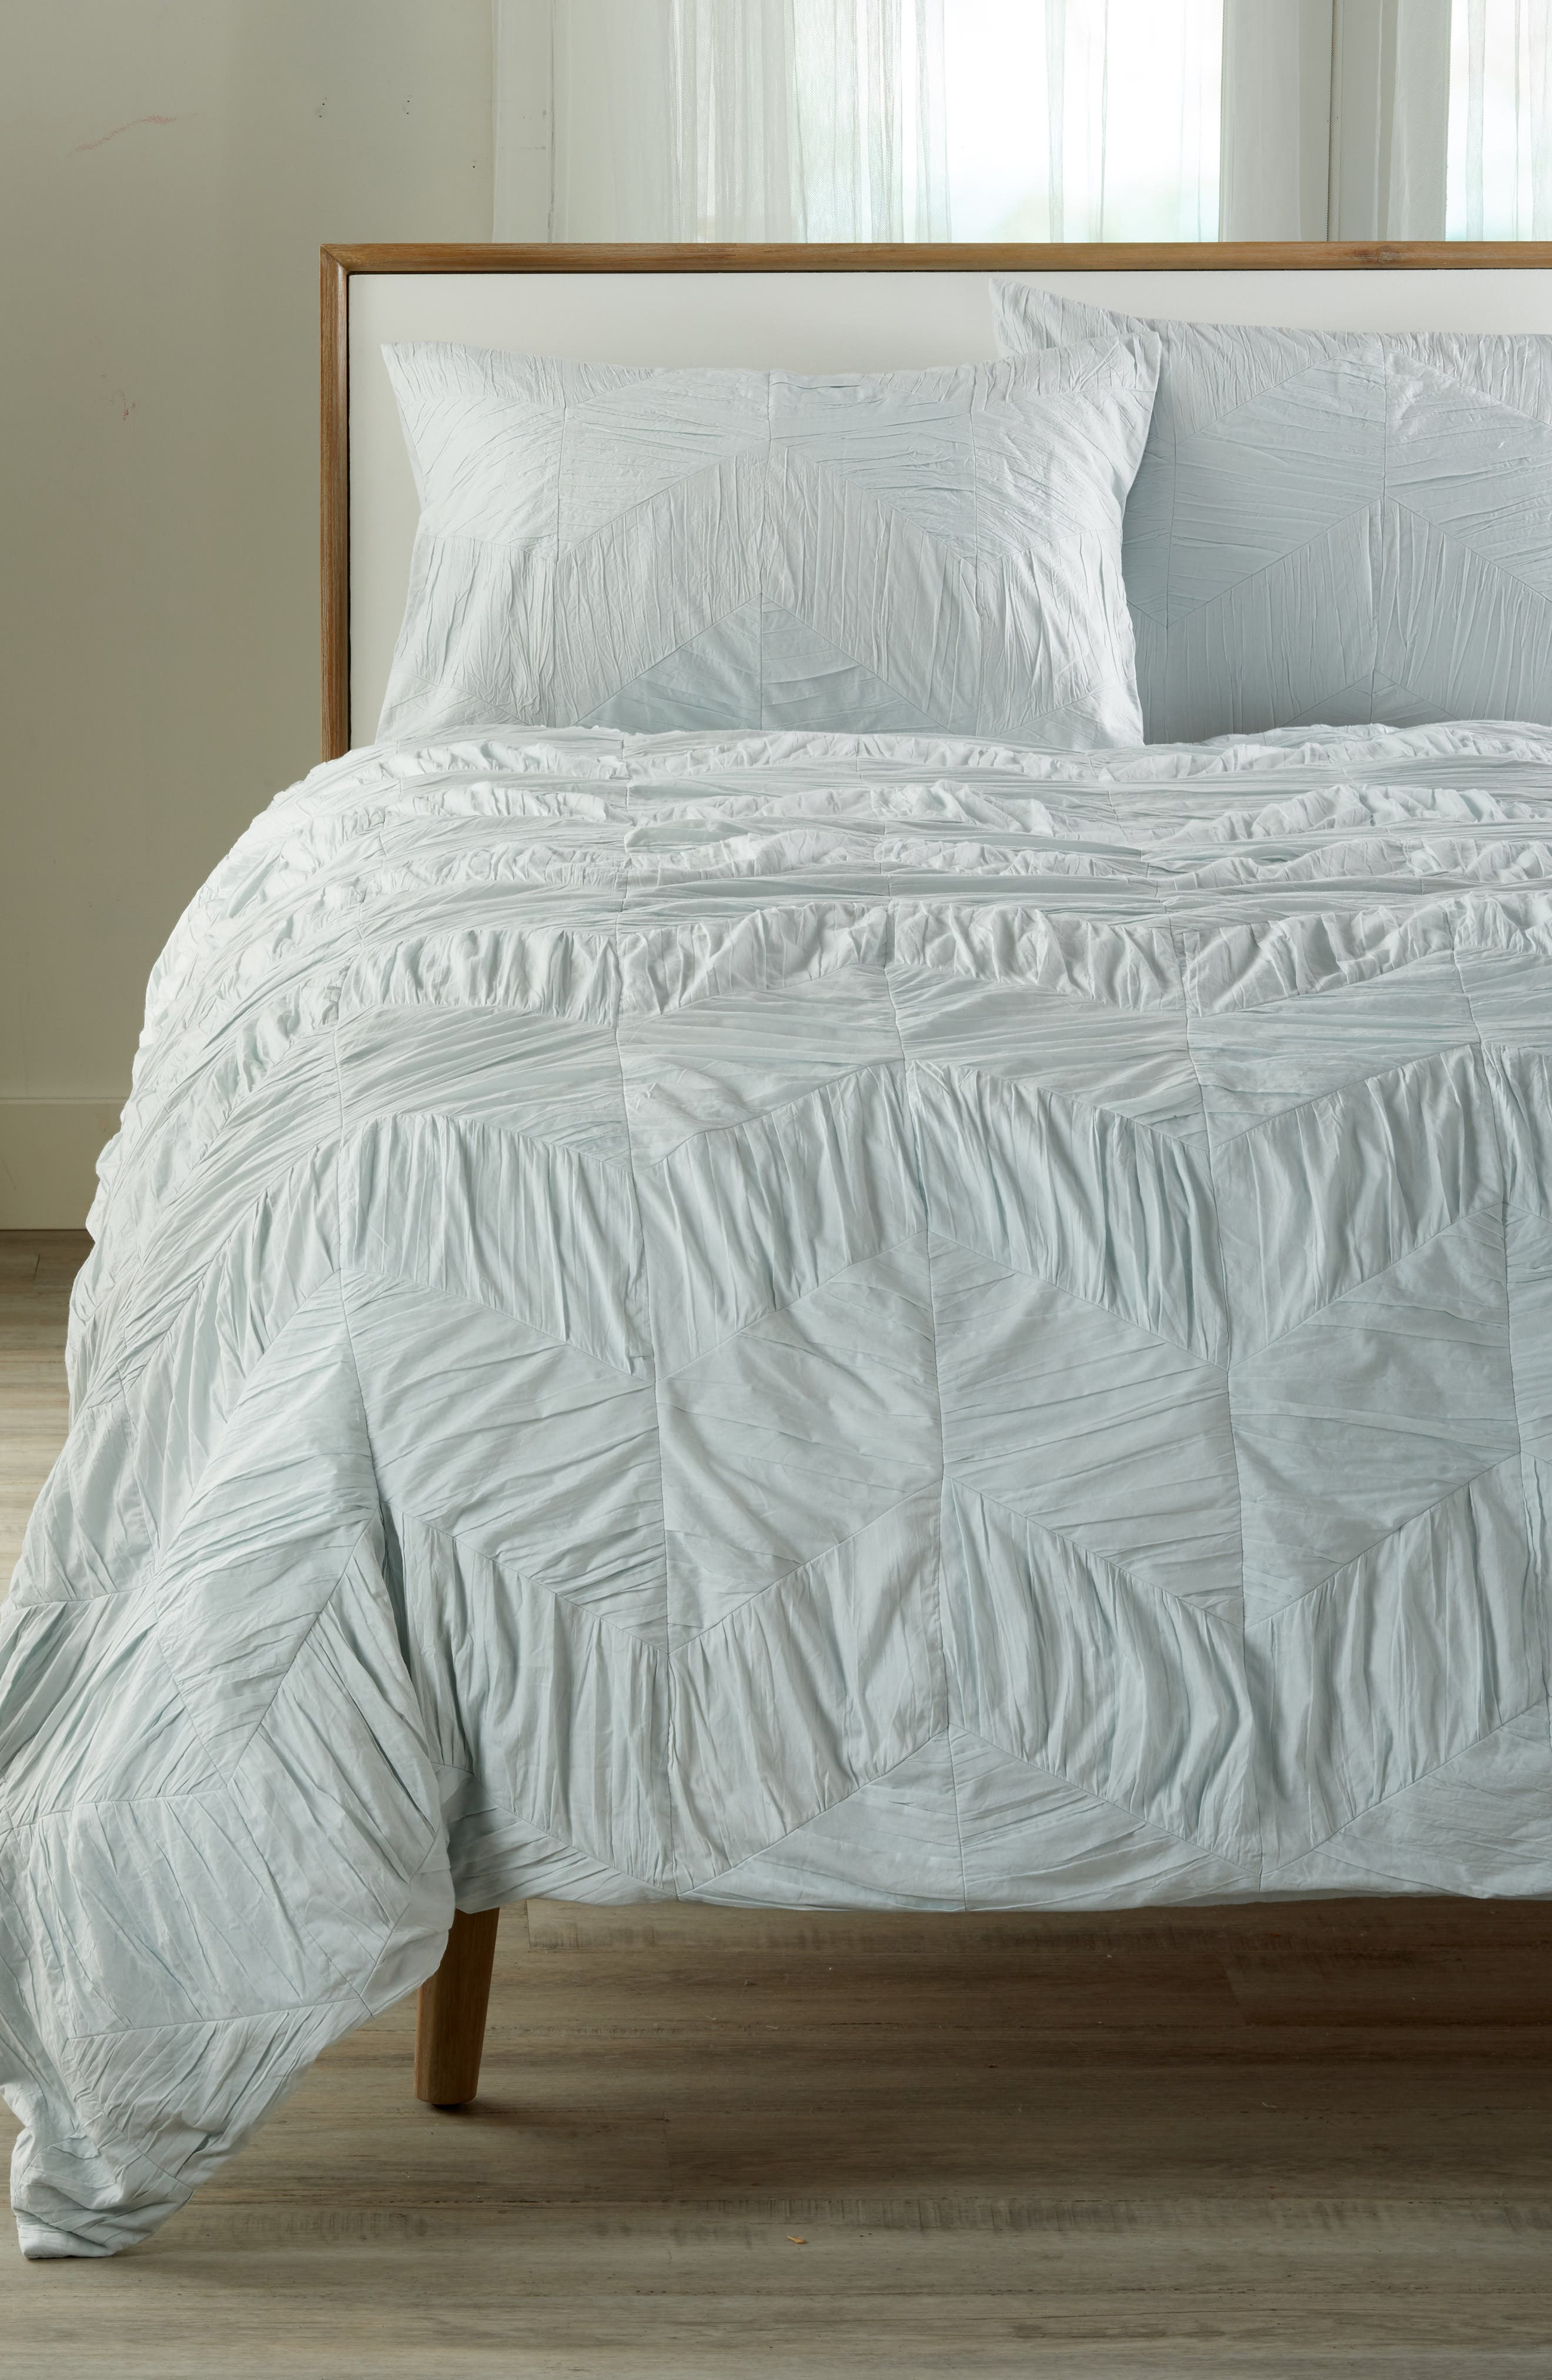 Nordstrom at Home Selene Duvet Cover